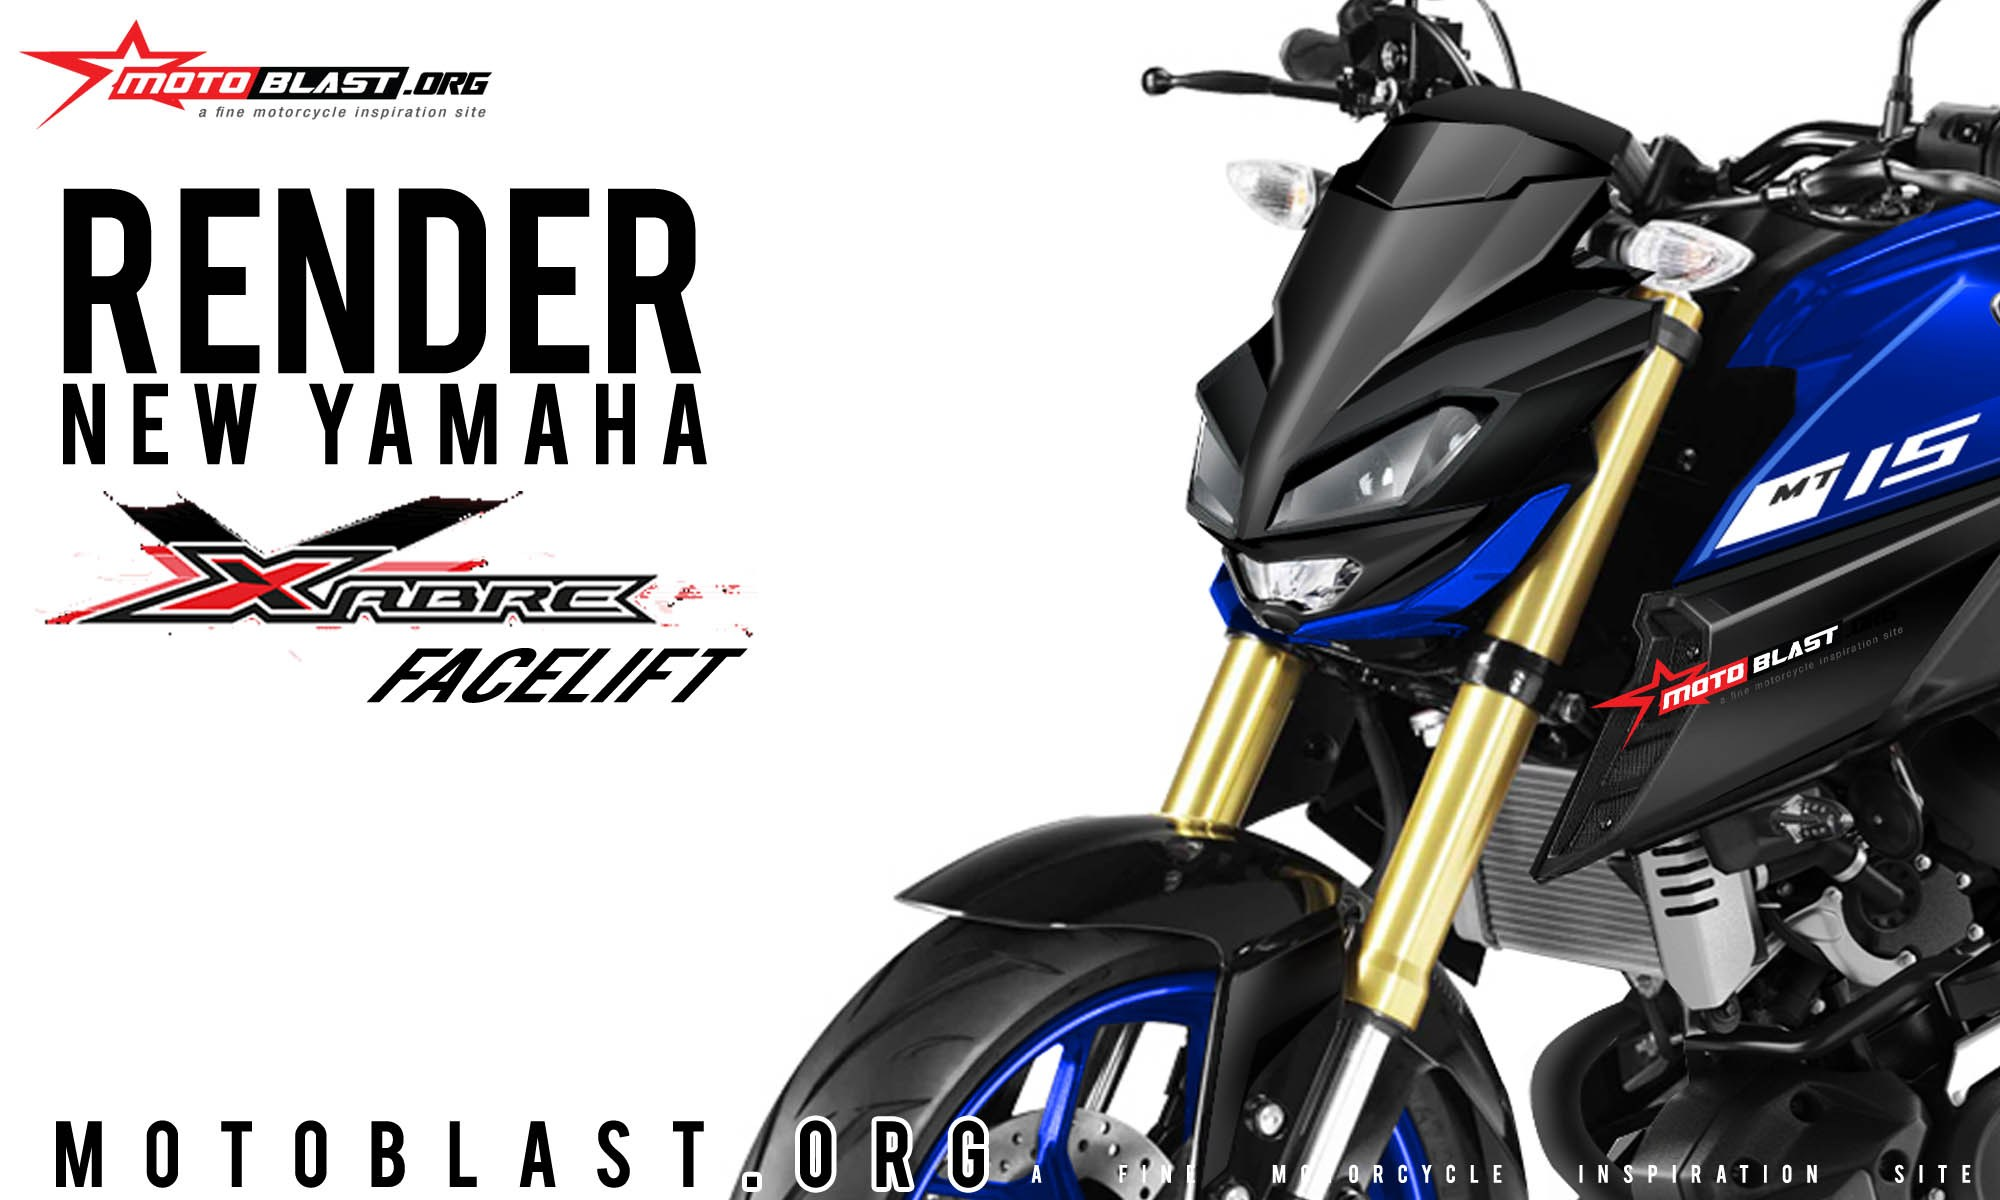 headlamp all new yamaha xabre facelift 2019 - pertamax7